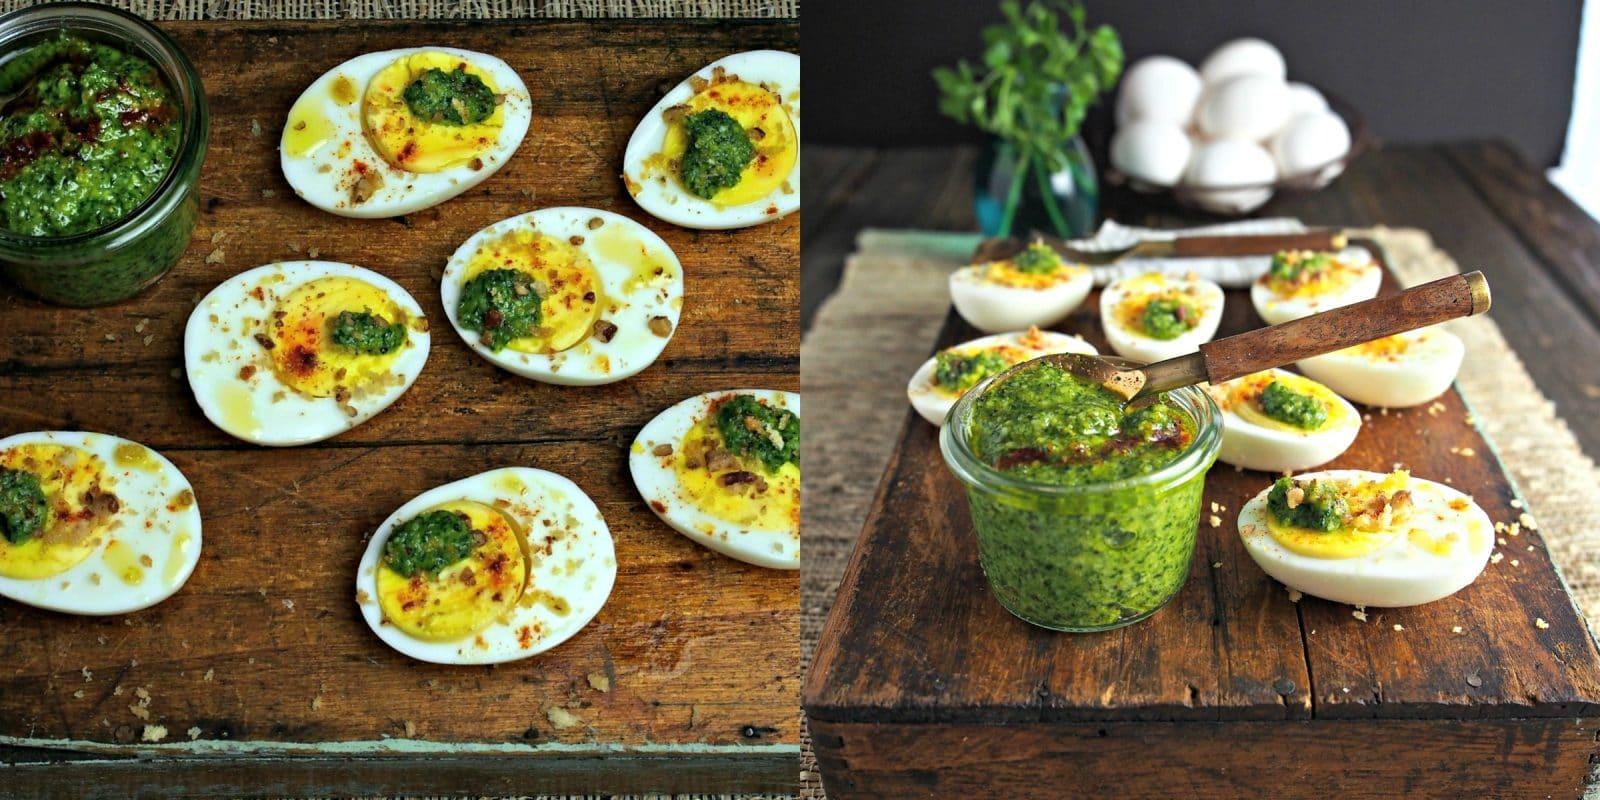 Pesto on Eggs topped with Sugared Pecans is a delicious and beautiful way to serve hard-cooked eggs. Pesto, eggs, smoked paprika, sugared pecans & Panko. Simply Sated